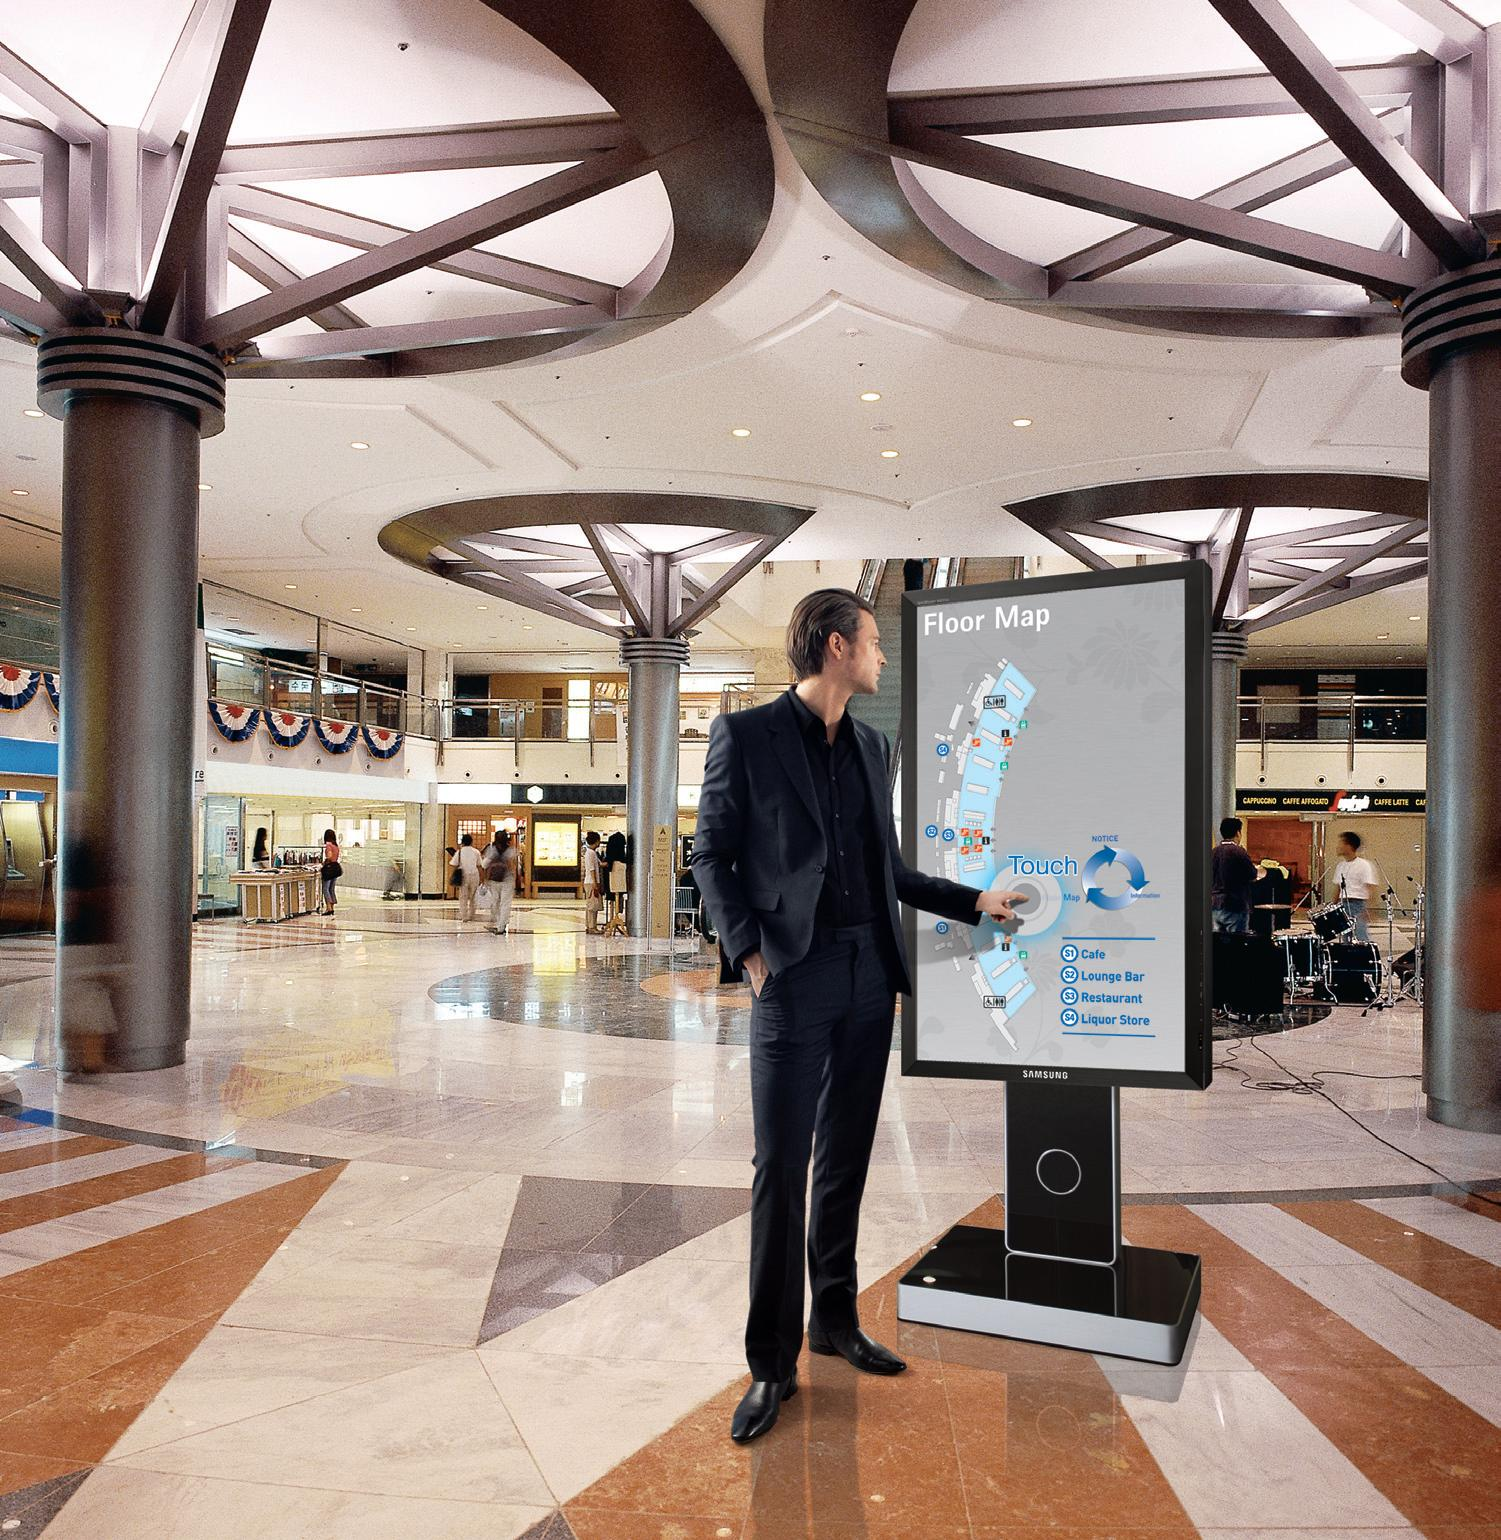 Touch Screen Digital Signage is More Advantageous Than Normal Digital Signage